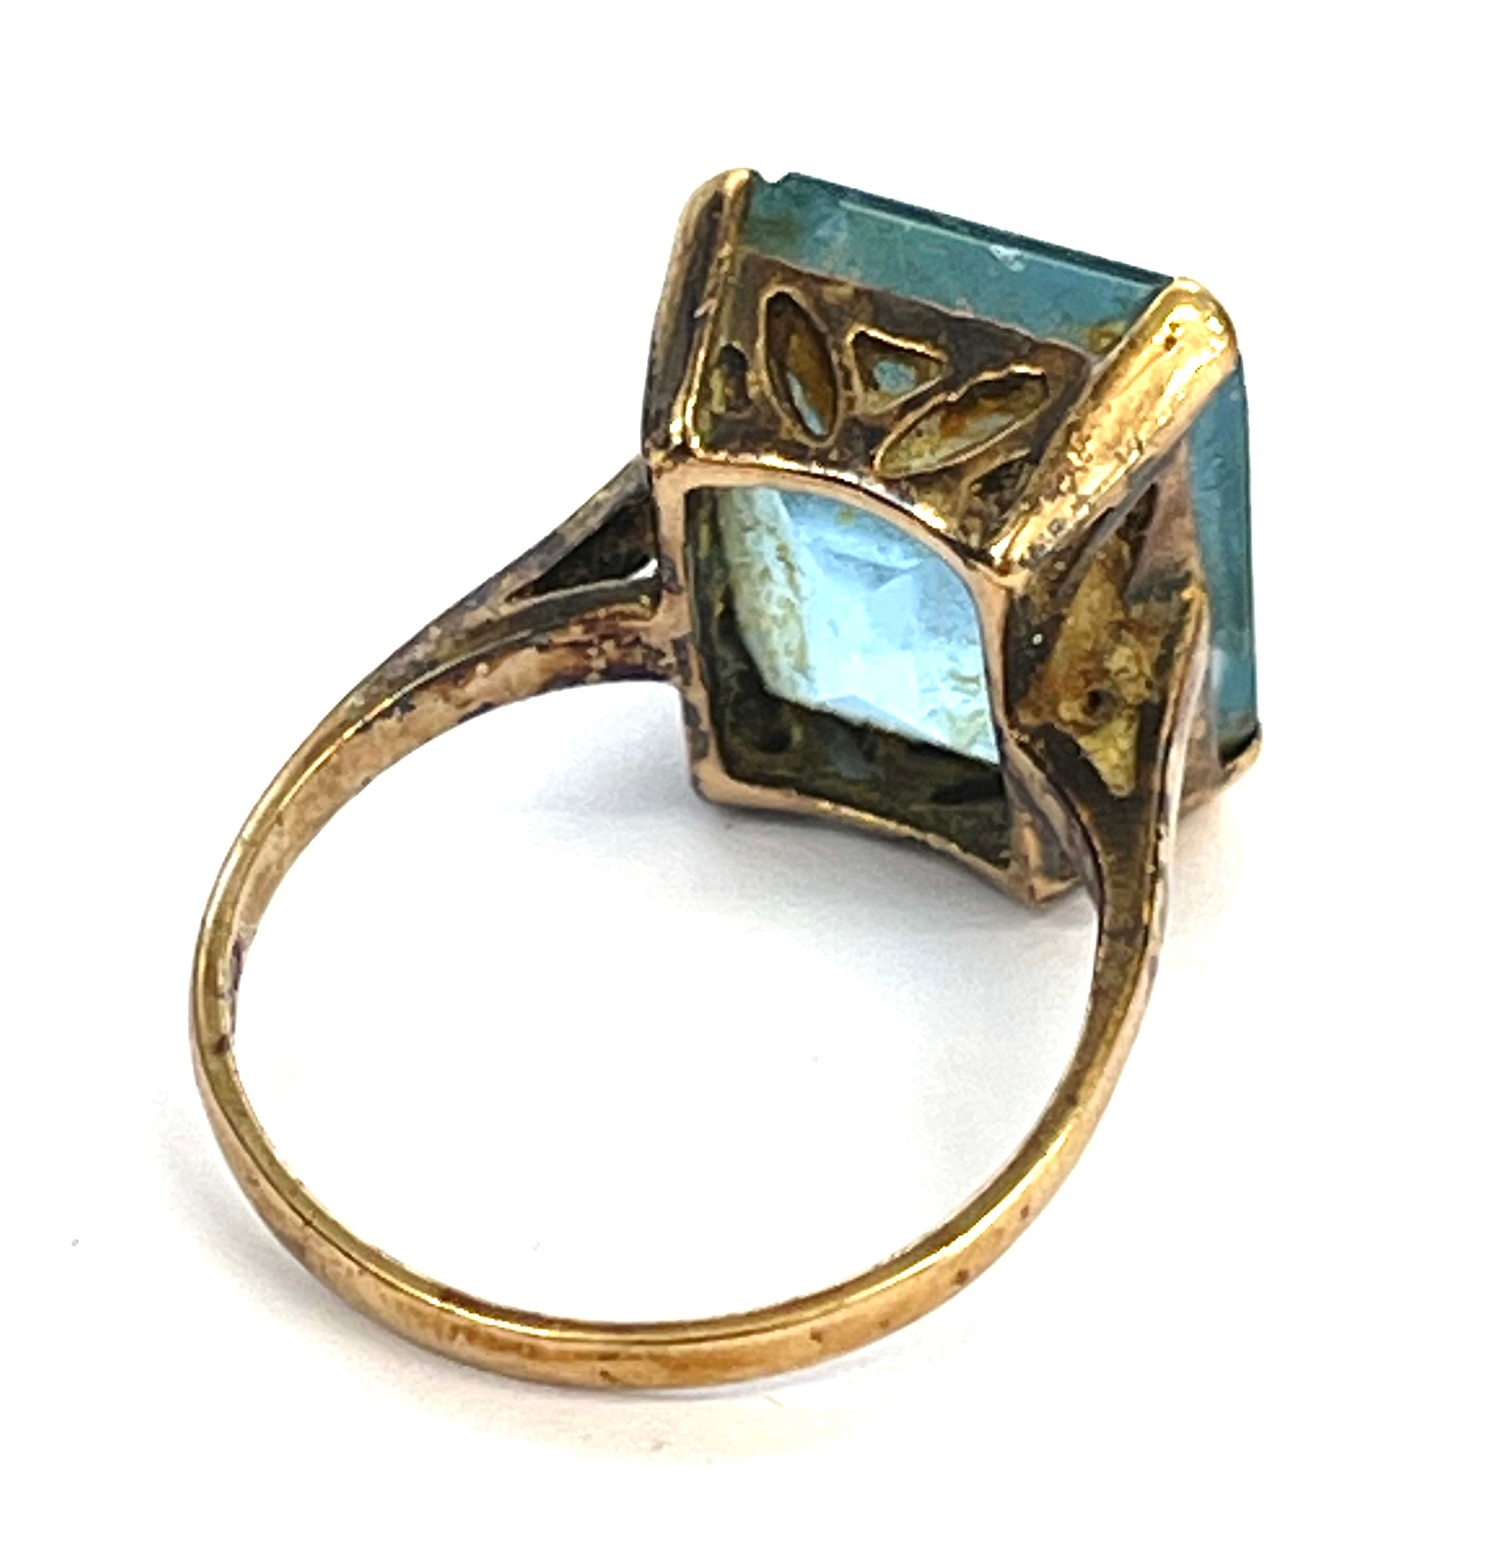 9ct gold stone set cocktail ring - Image 2 of 4